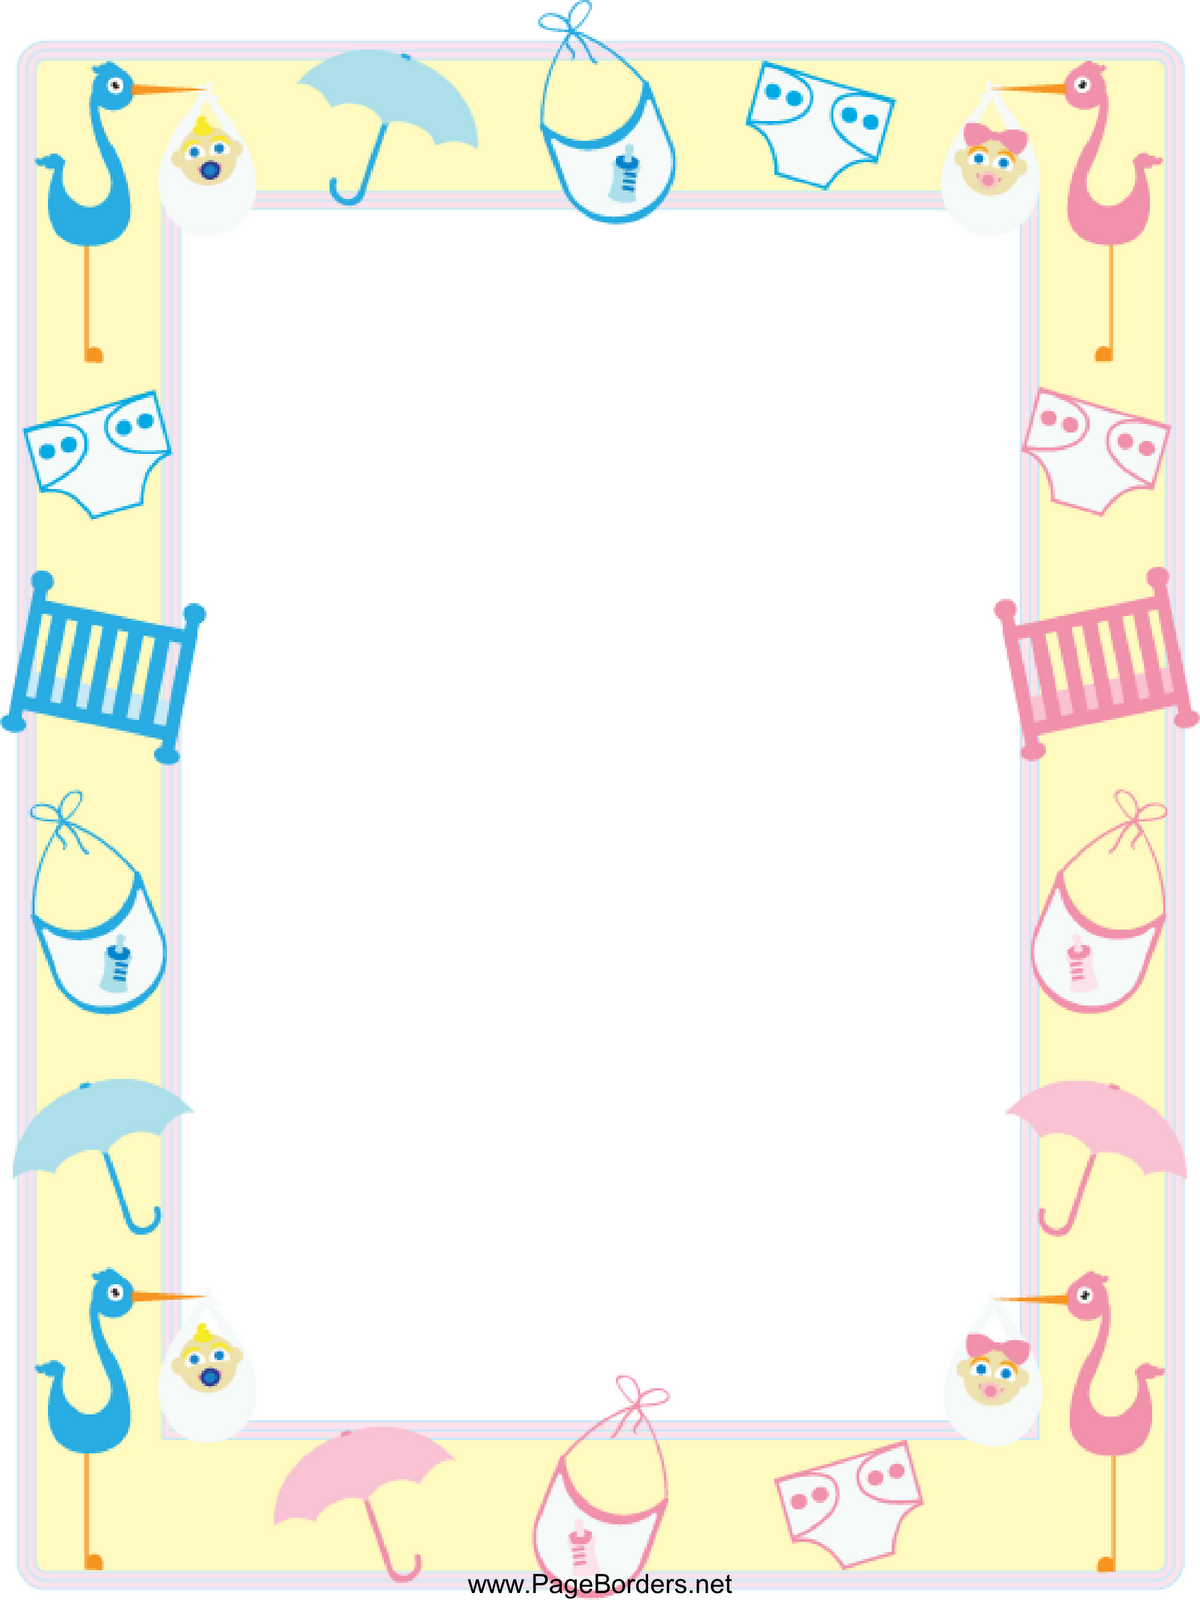 Lovely 28+ Collection Of Baby Shower Clipart Borders | High Quality, Free with Unique Baby Shower Borders